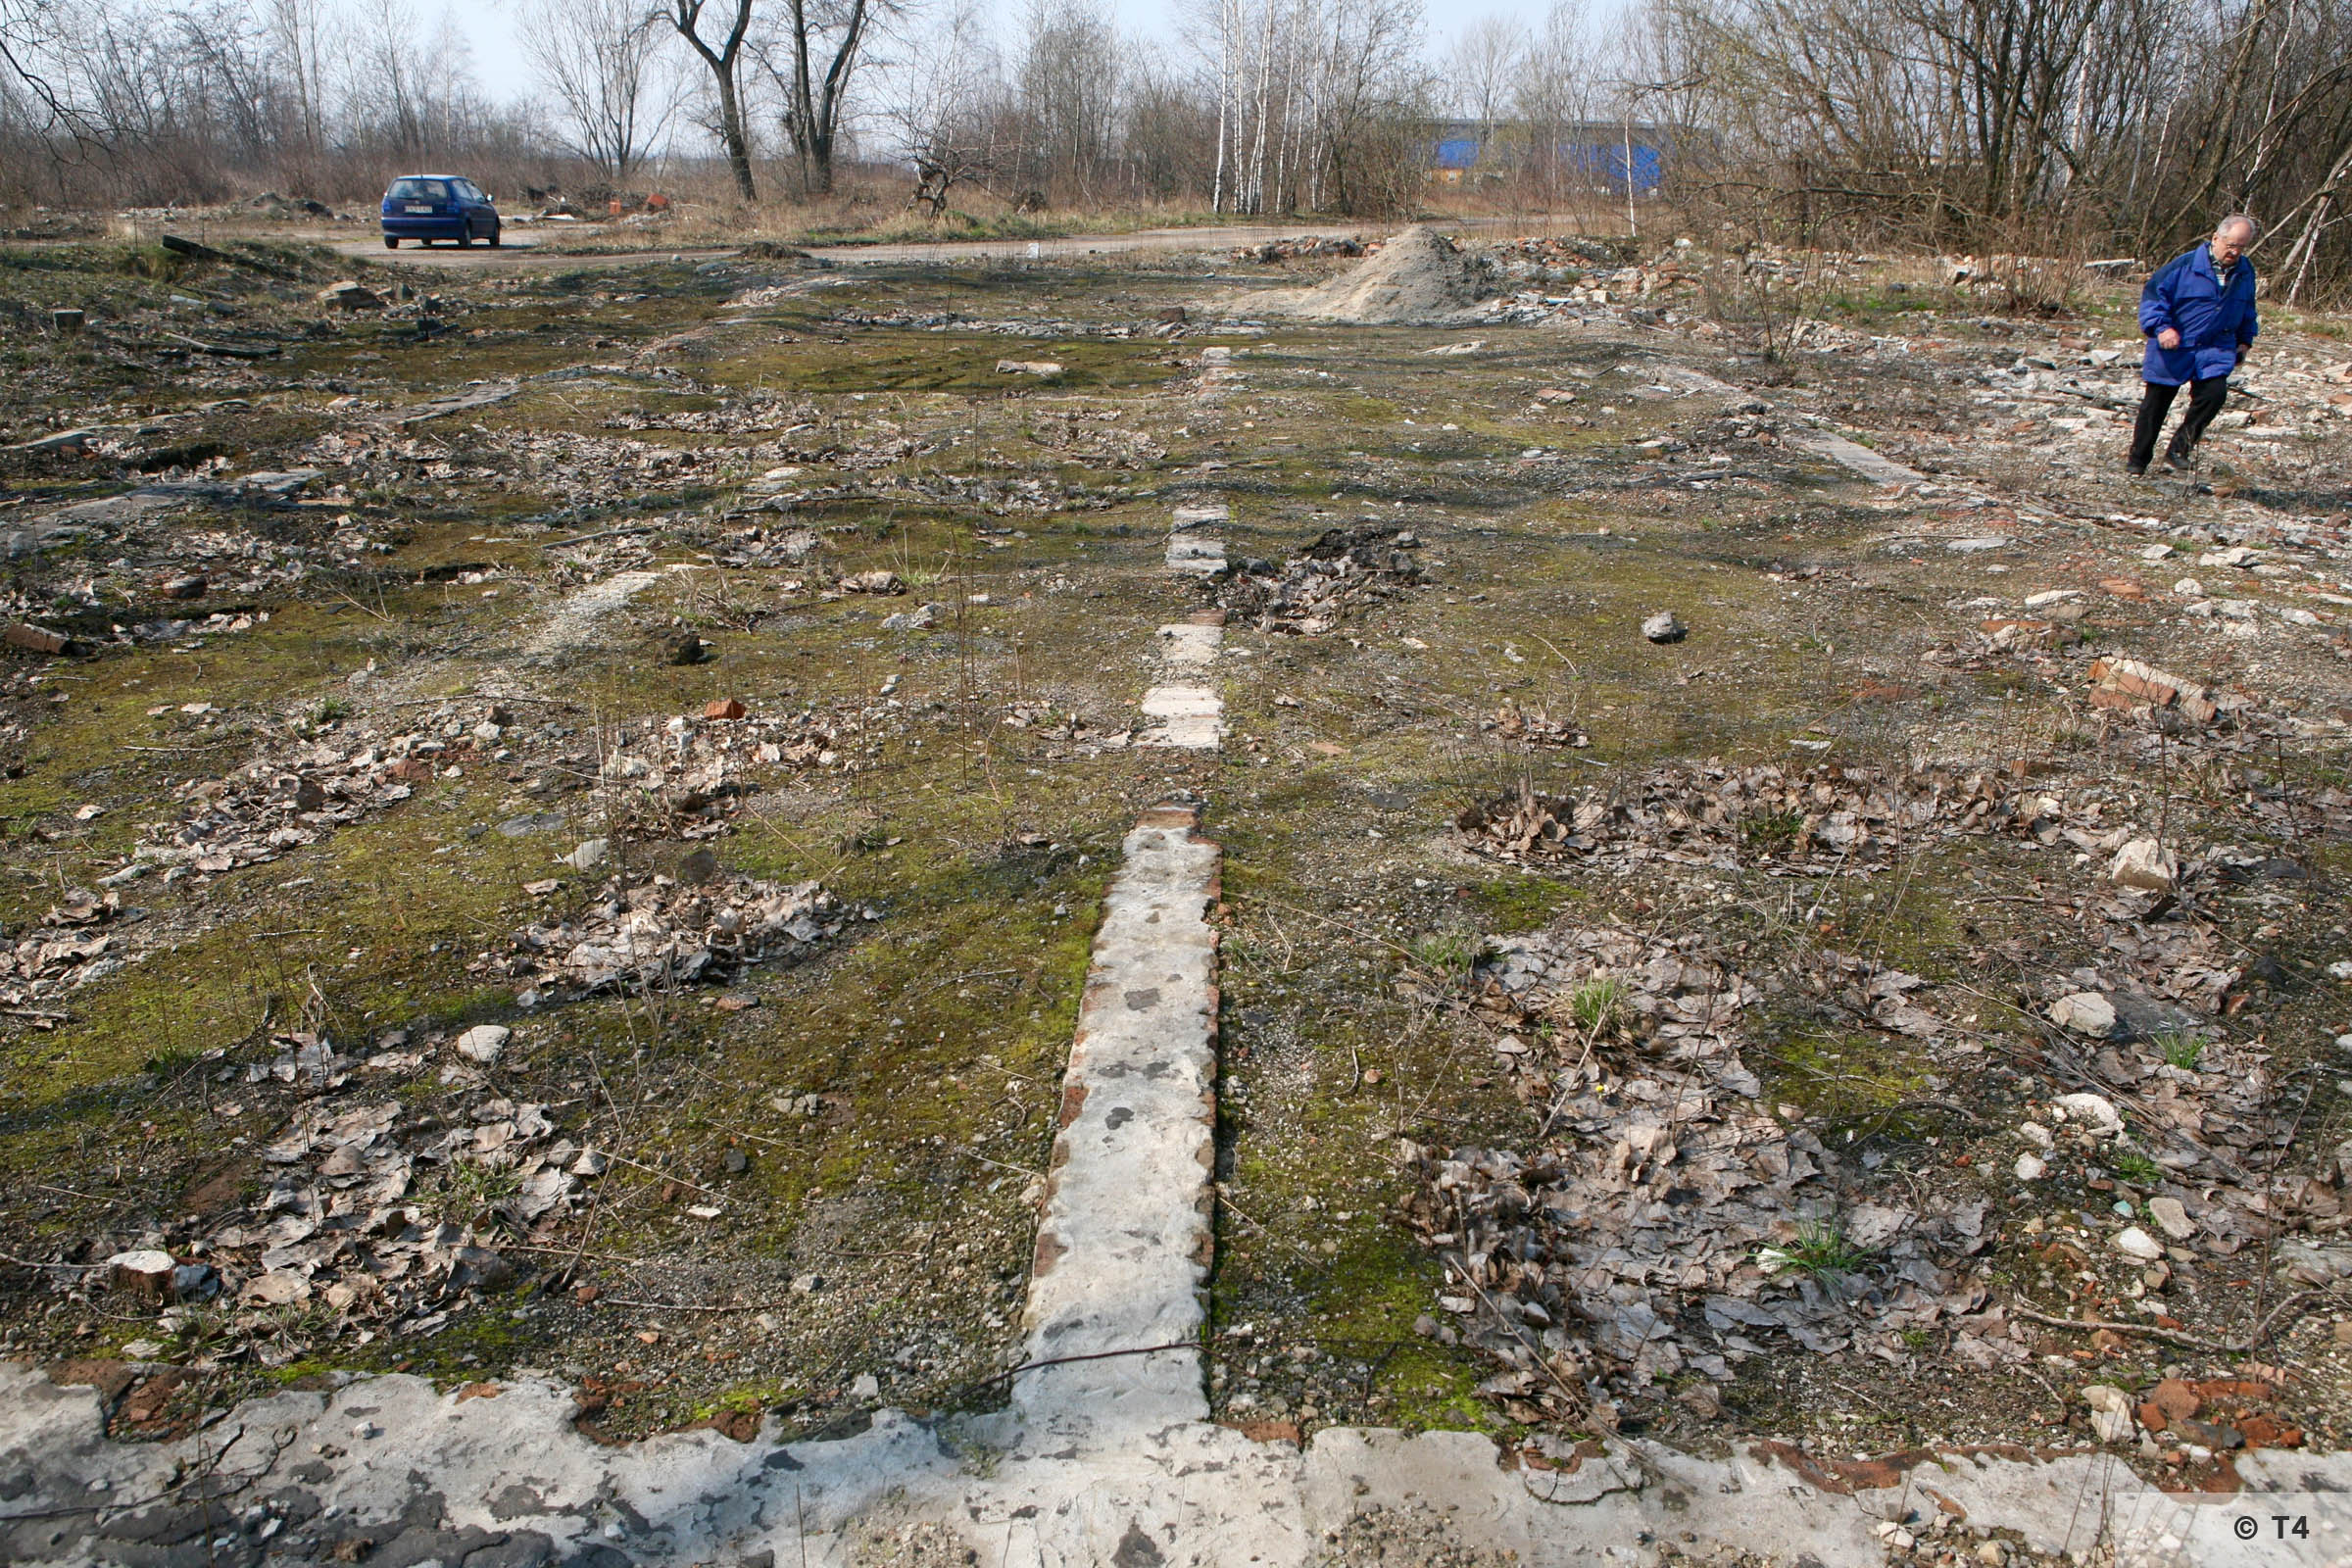 Foundations of barracks in the area of the former sub camp. 2007 T4 6671